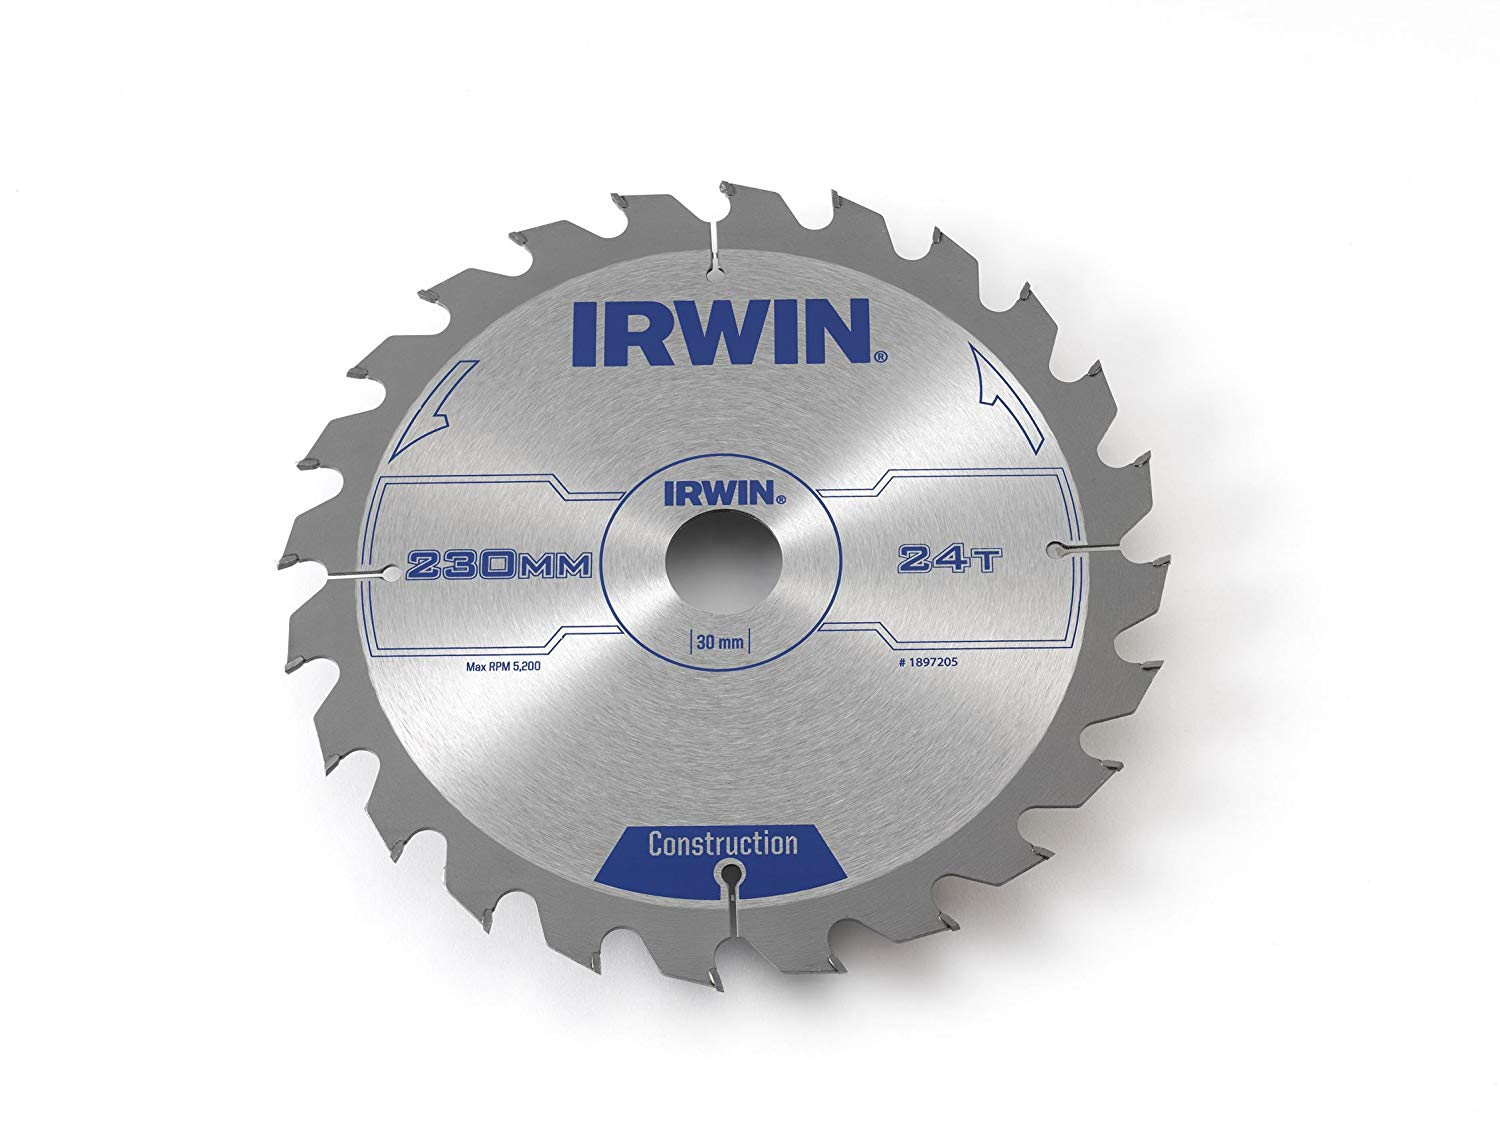 IRWIN 1897205 - Professional Wood Circular Saw Blades 9in / 230 x 24T x 30 mm (10506813)